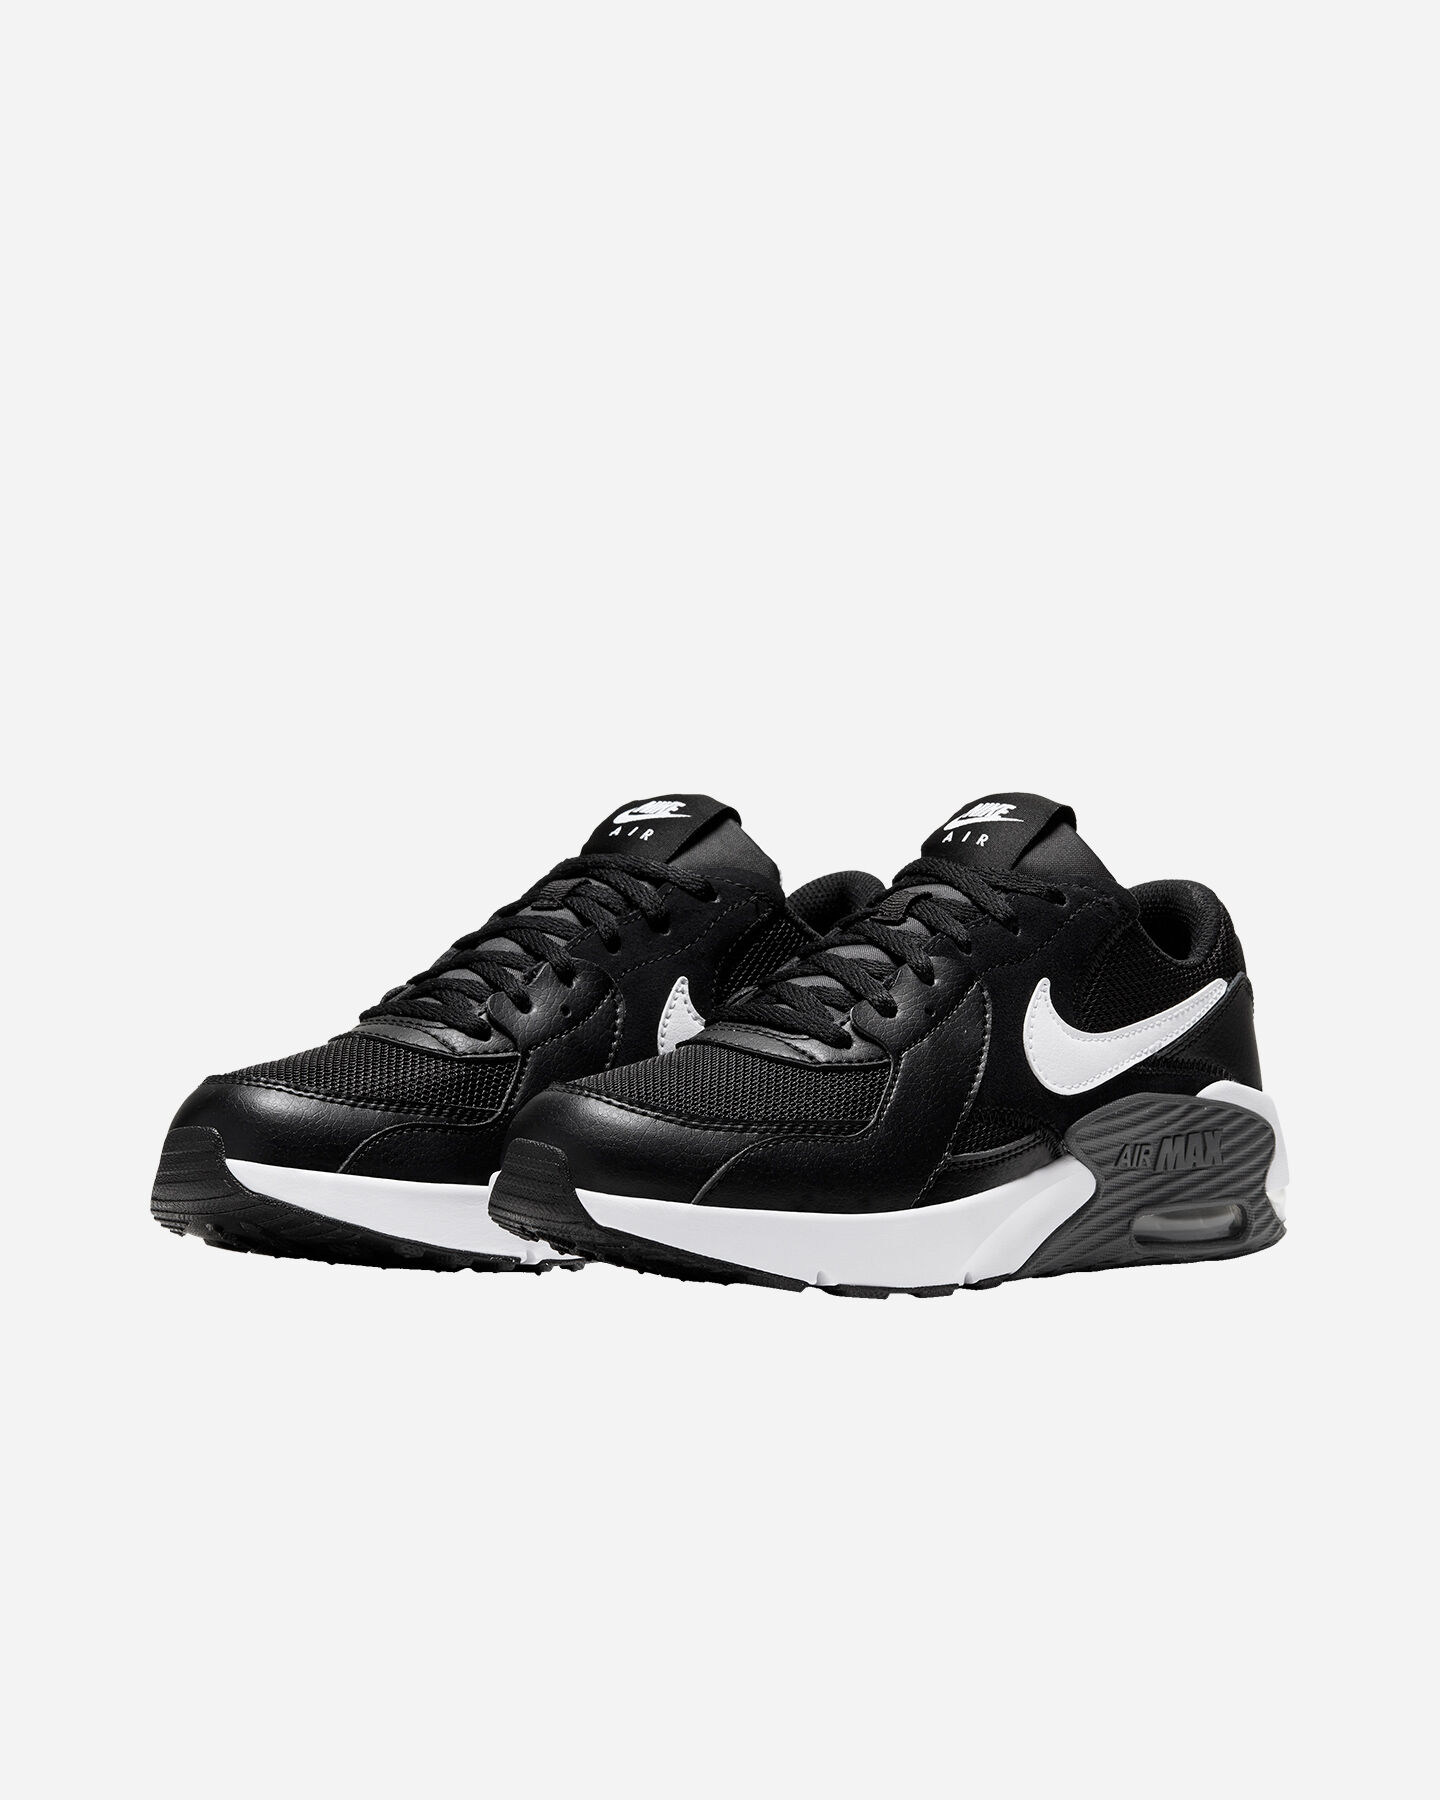 Scarpe sneakers NIKE AIR MAX EXCEE GS JR S5162124|001|4Y scatto 1